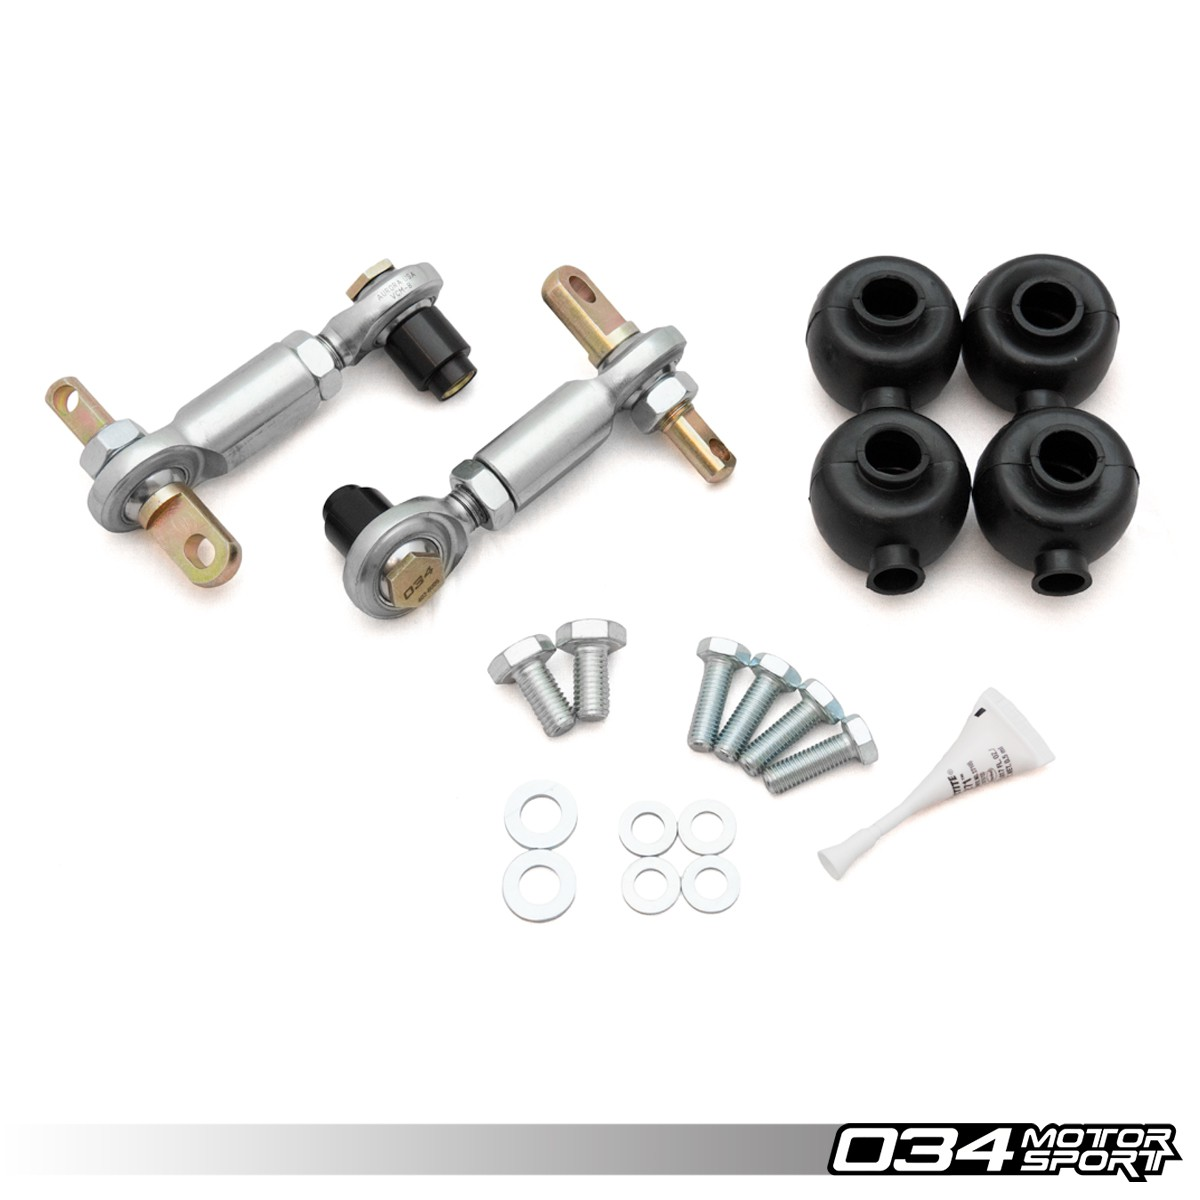 Sway Bar End Links, Motorsport, Rear, Adjustable, B6/B7 Audi A4/S4/RS4 Quattro & FWD